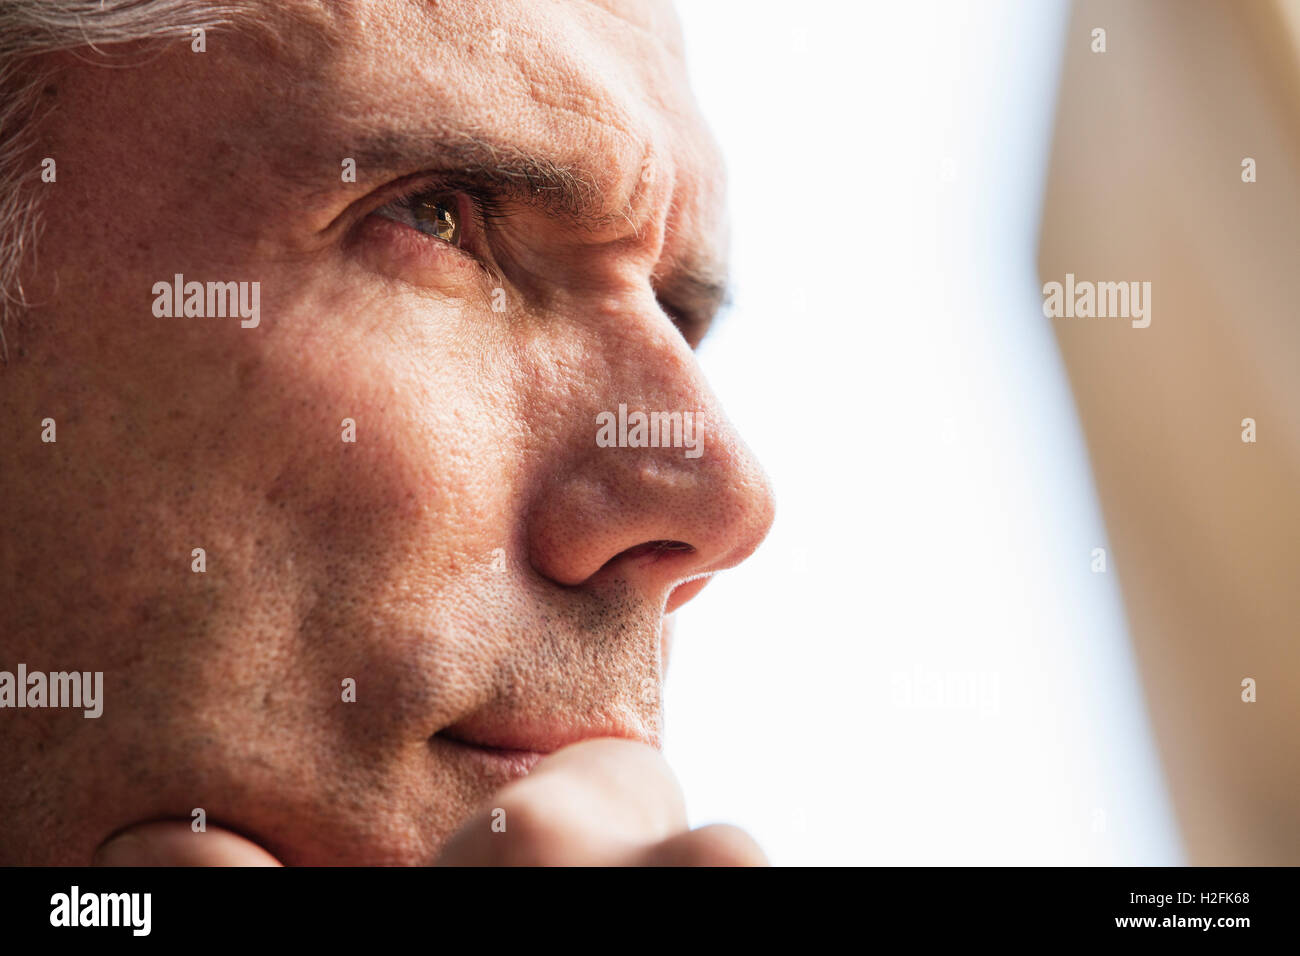 Close up of a man's face, his hand on  his chin, looking into the distance. - Stock Image